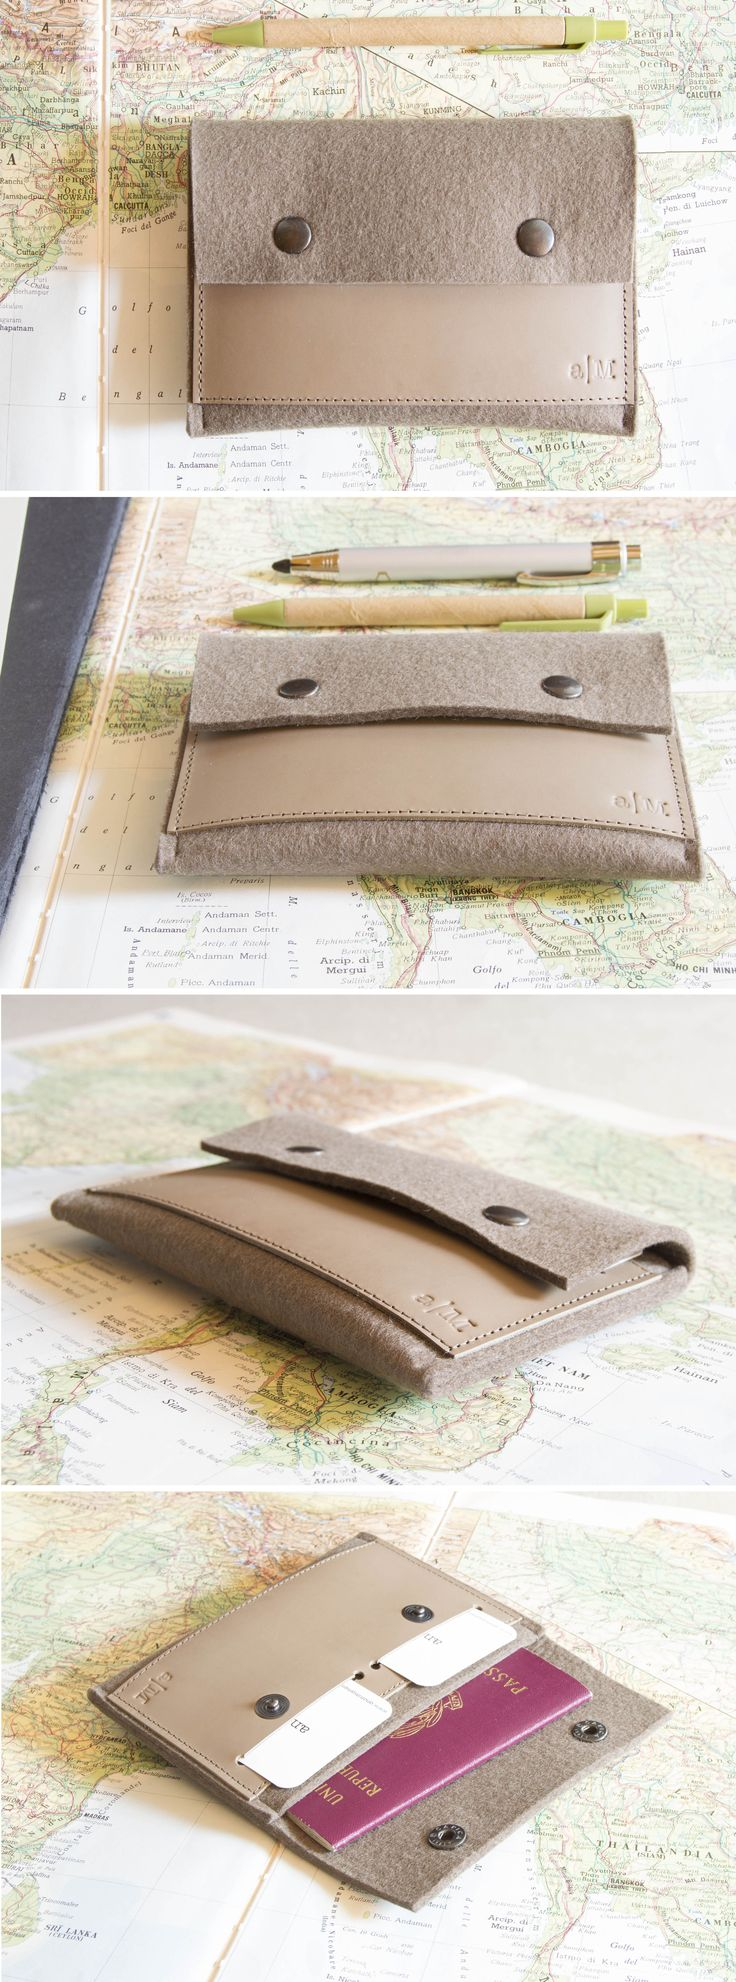 Taupe passport wallet made of 100% wool felt and vegetable tanned leather #felt #leather #passportwallet #passportcase #travelling #traveling #madeinitaly #woolfelt